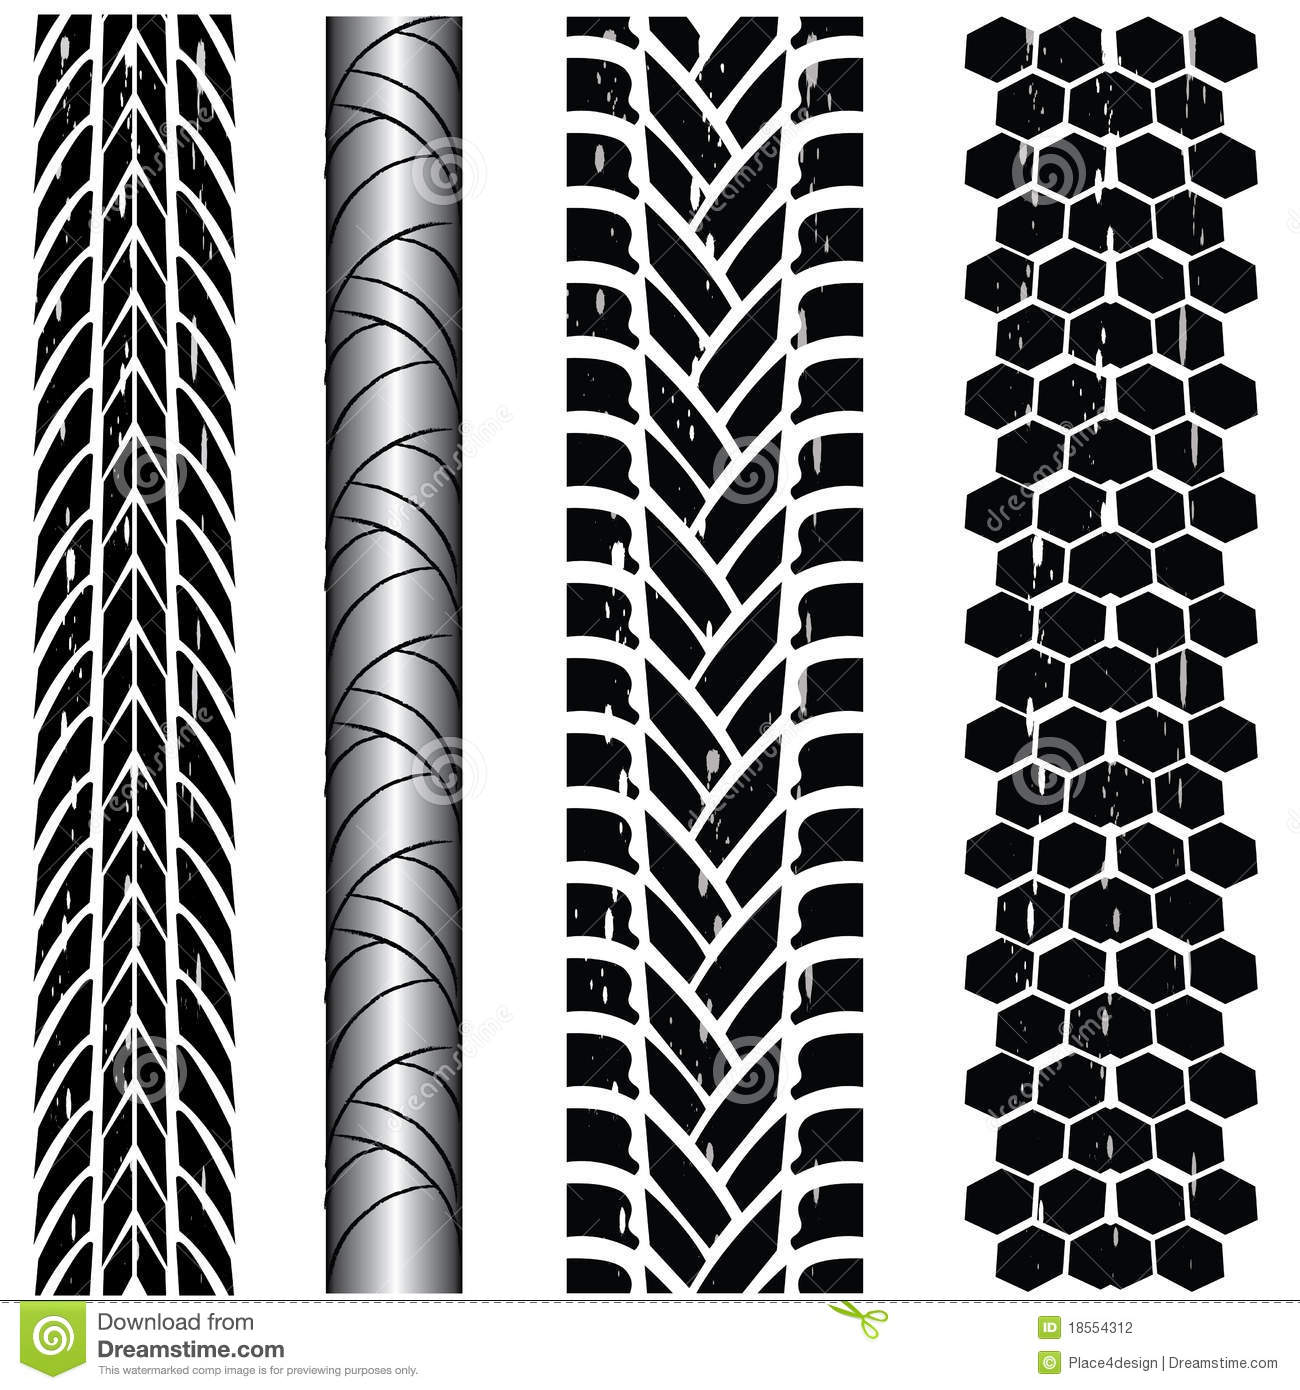 Tire track collection stock vector. Illustration of illustration - 18554312